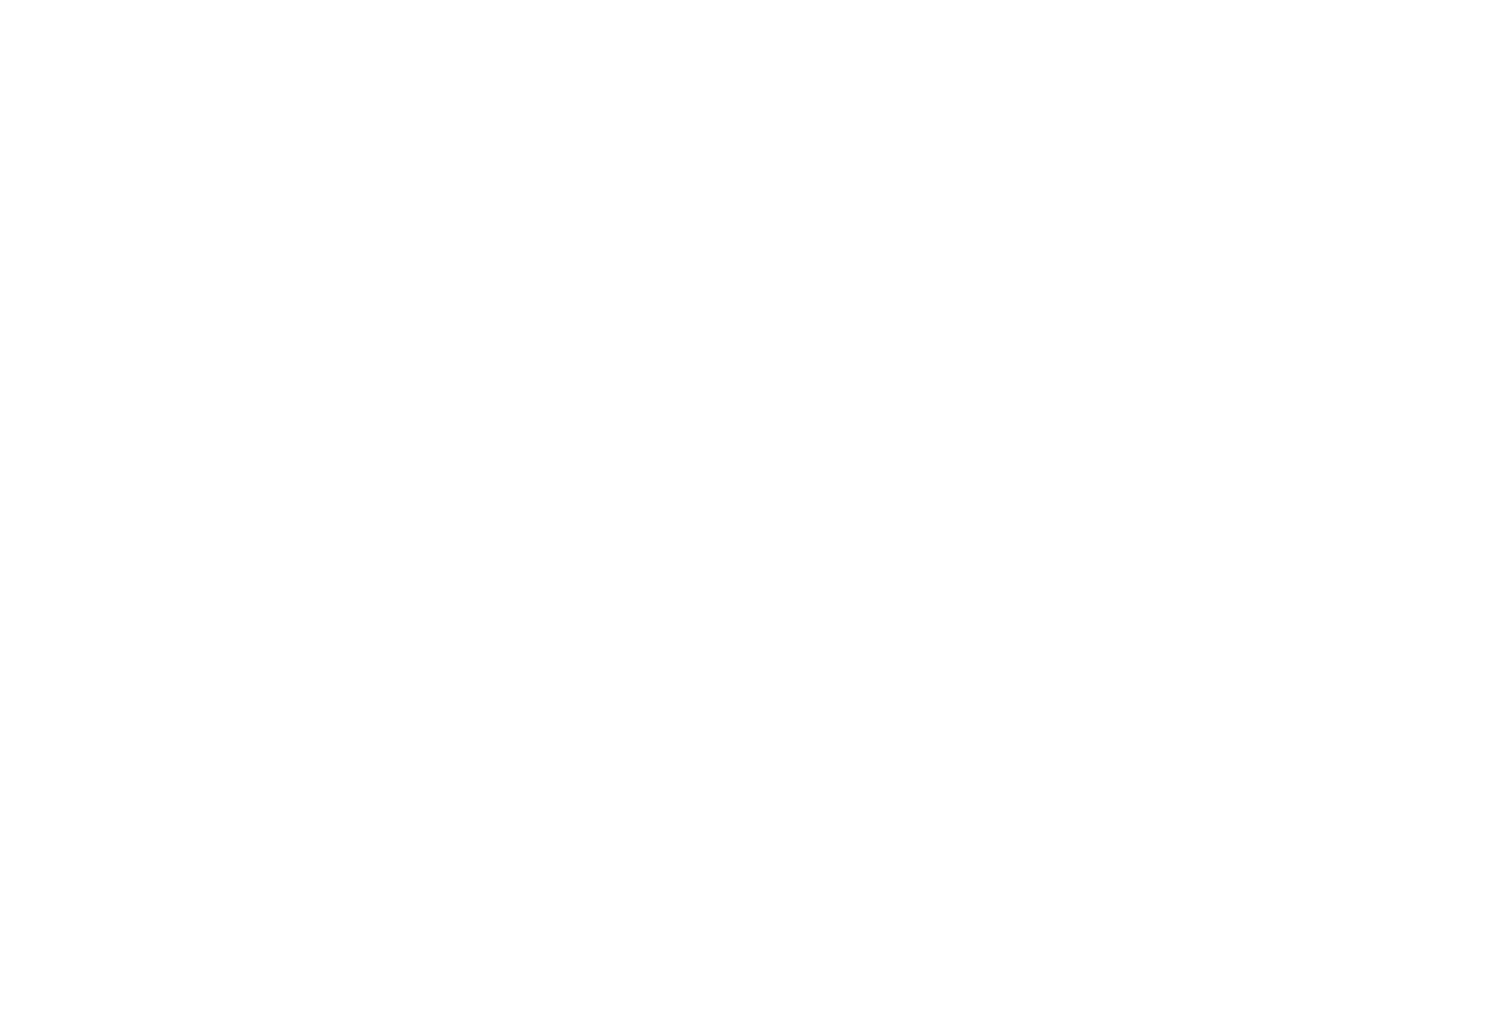 OGExperience